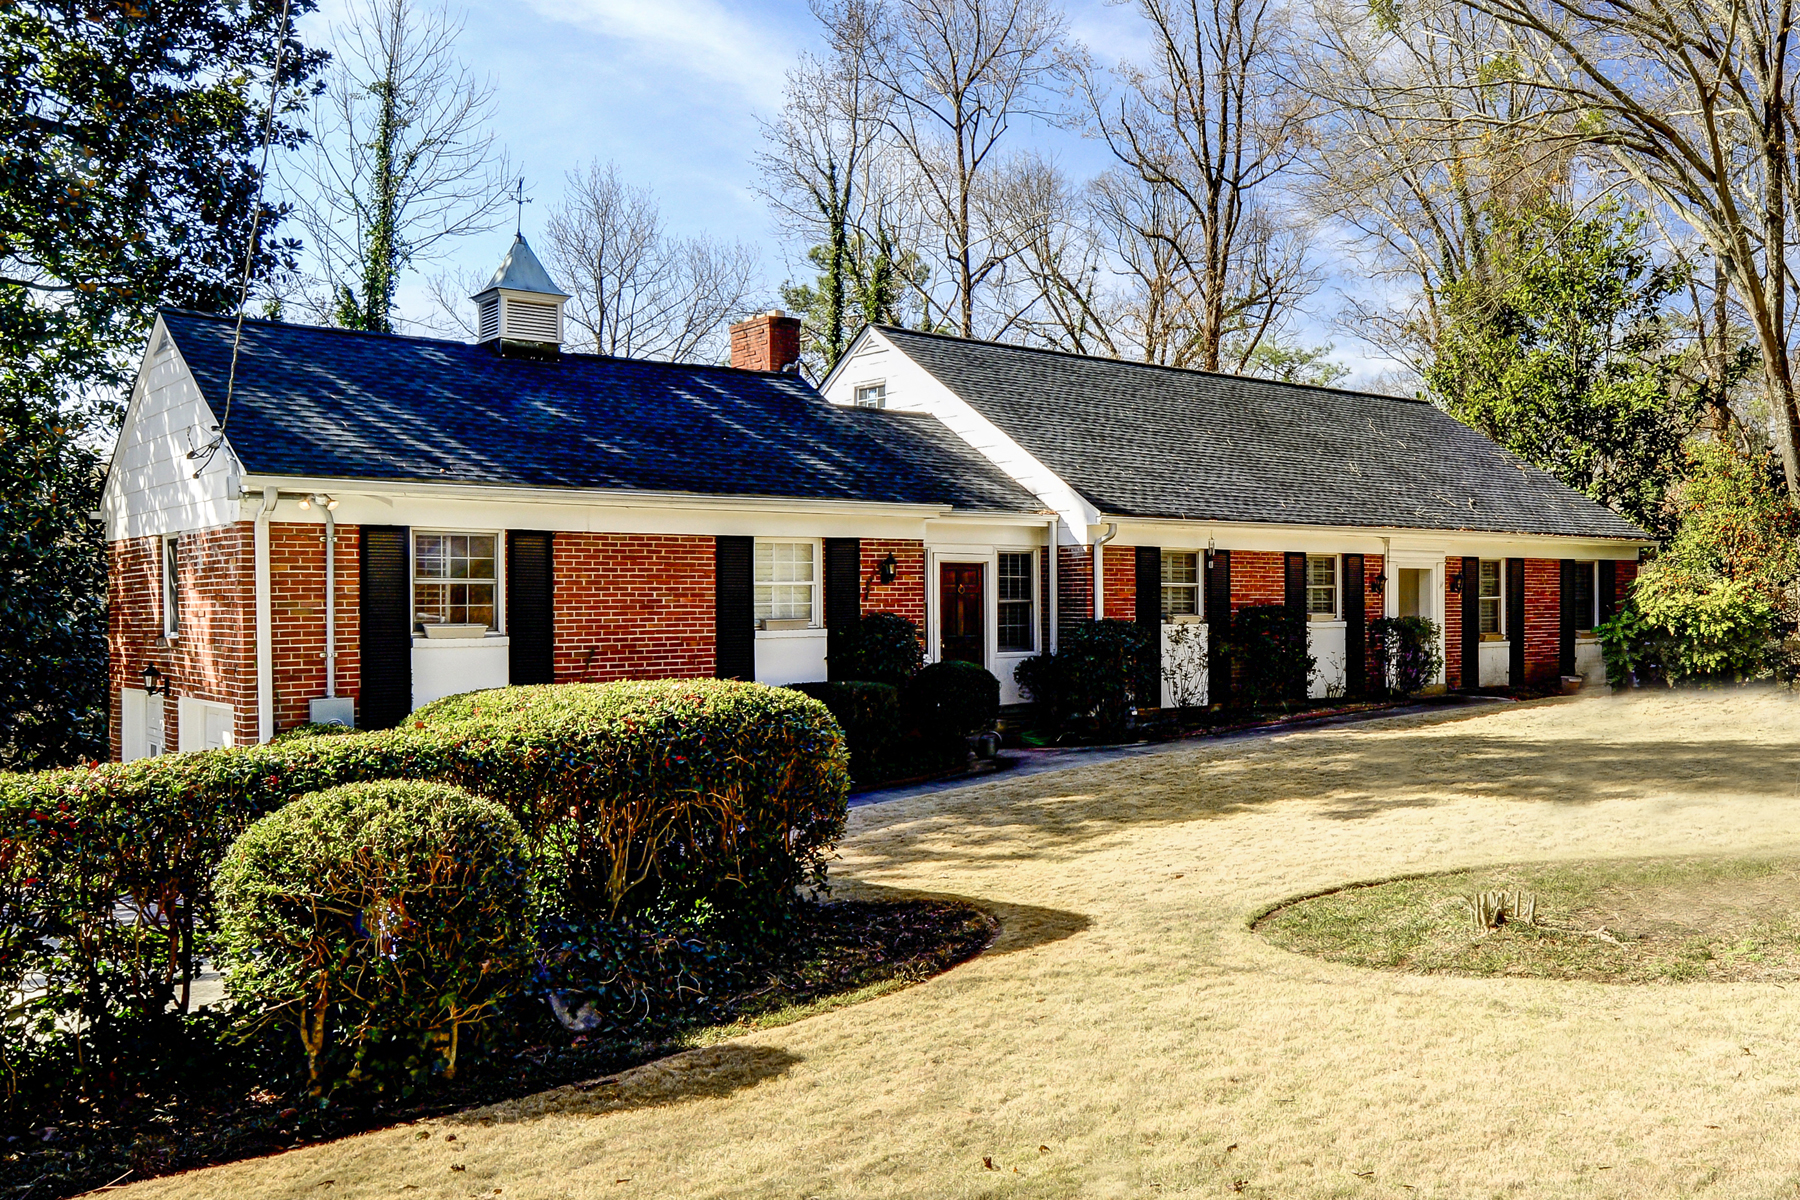 Single Family Home for Sale at Spacious Buckhead Ranch 1080 Peachtree Battle Avenue NW Buckhead, Atlanta, Georgia, 30327 United States